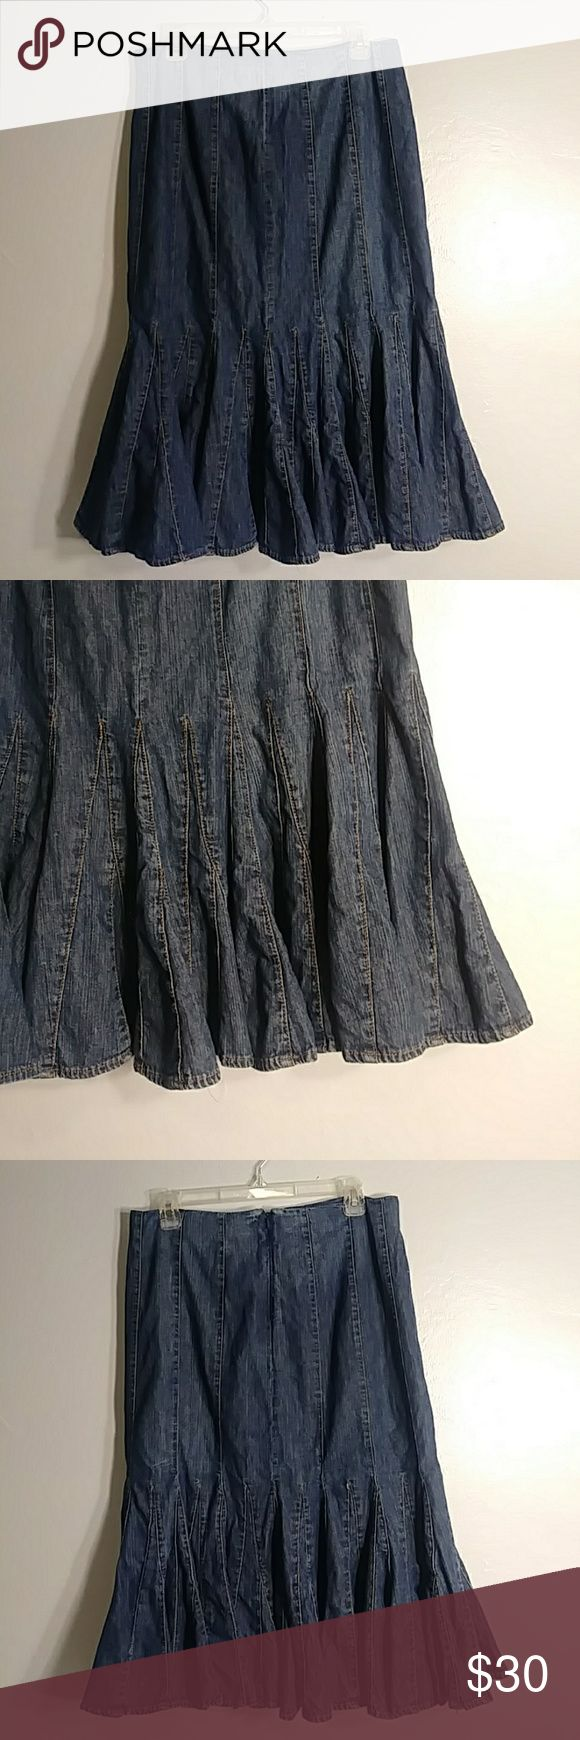 "Ralph lauren below the knee denim skirt sz: 8 Has cute bottom denim detail. 100% cotton denim. Has side  zipper. Would look super cute with boots. Sz: 8 Waist: 16"" Length: 28"" Has light wear. Ralph Lauren Skirts Midi"